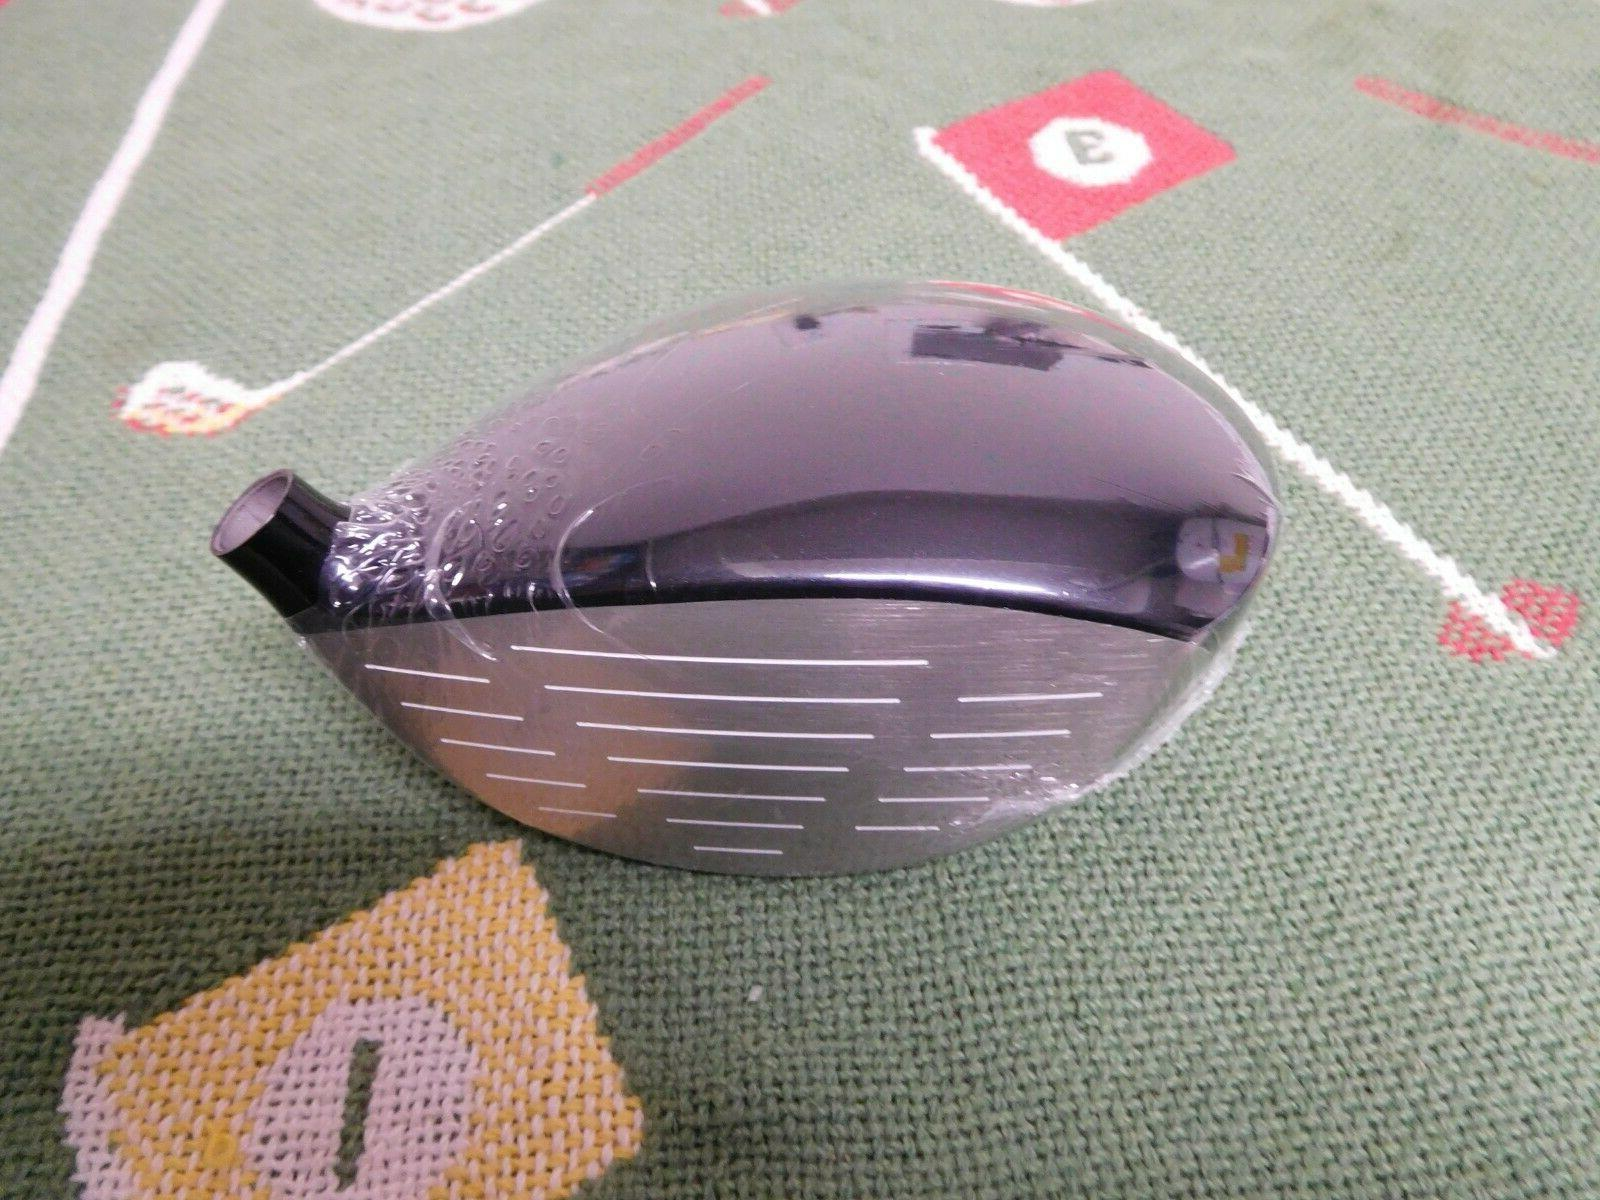 New Srixon Z 565 Driver Head Only!